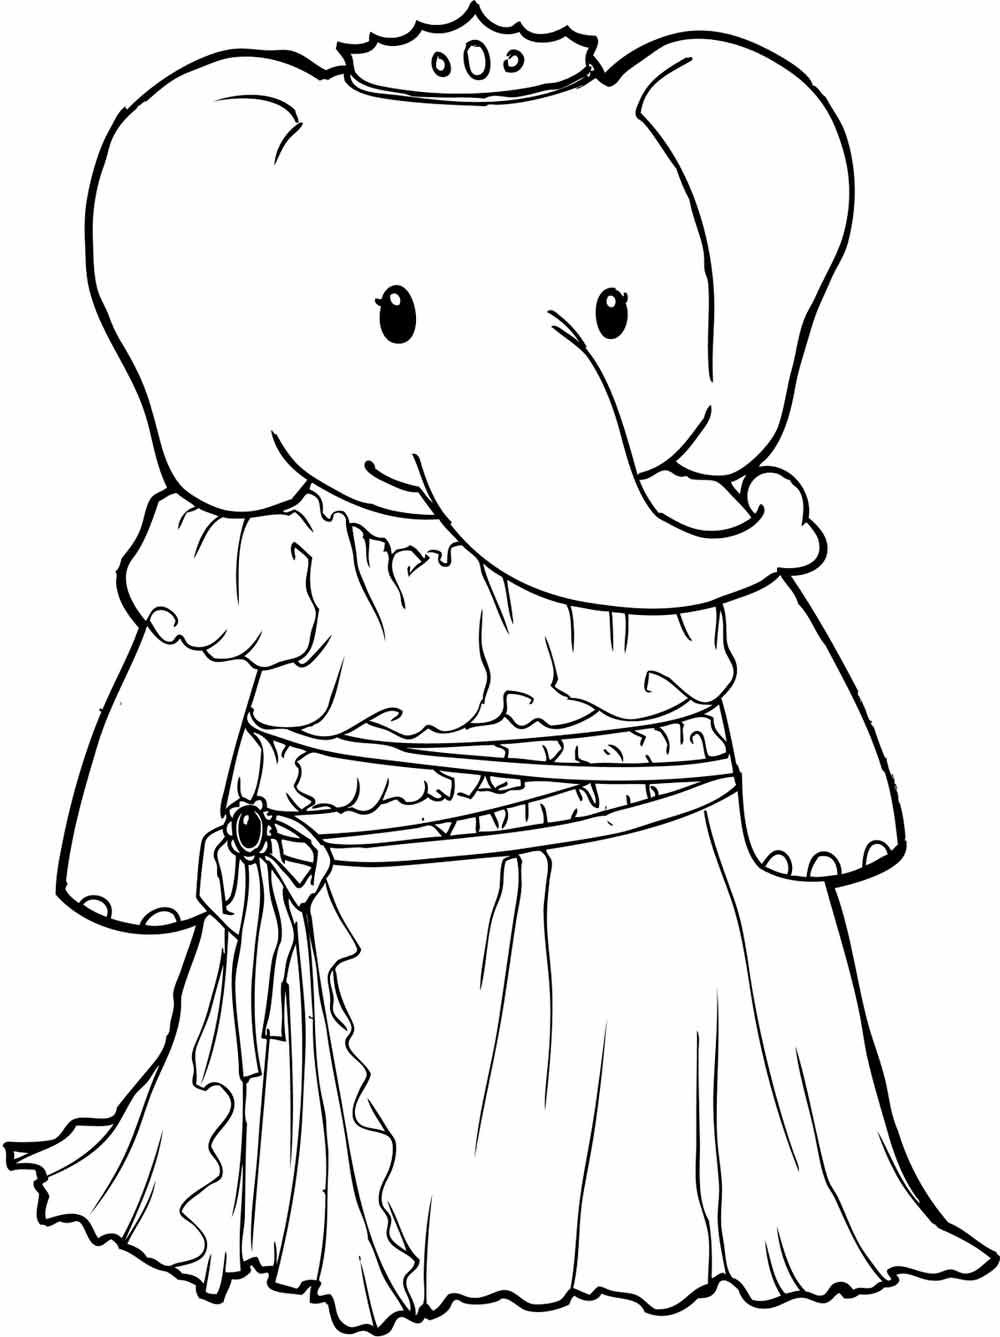 coloring elephant tusks pink elephant tusk drawing at getdrawings free download coloring pink tusks elephant